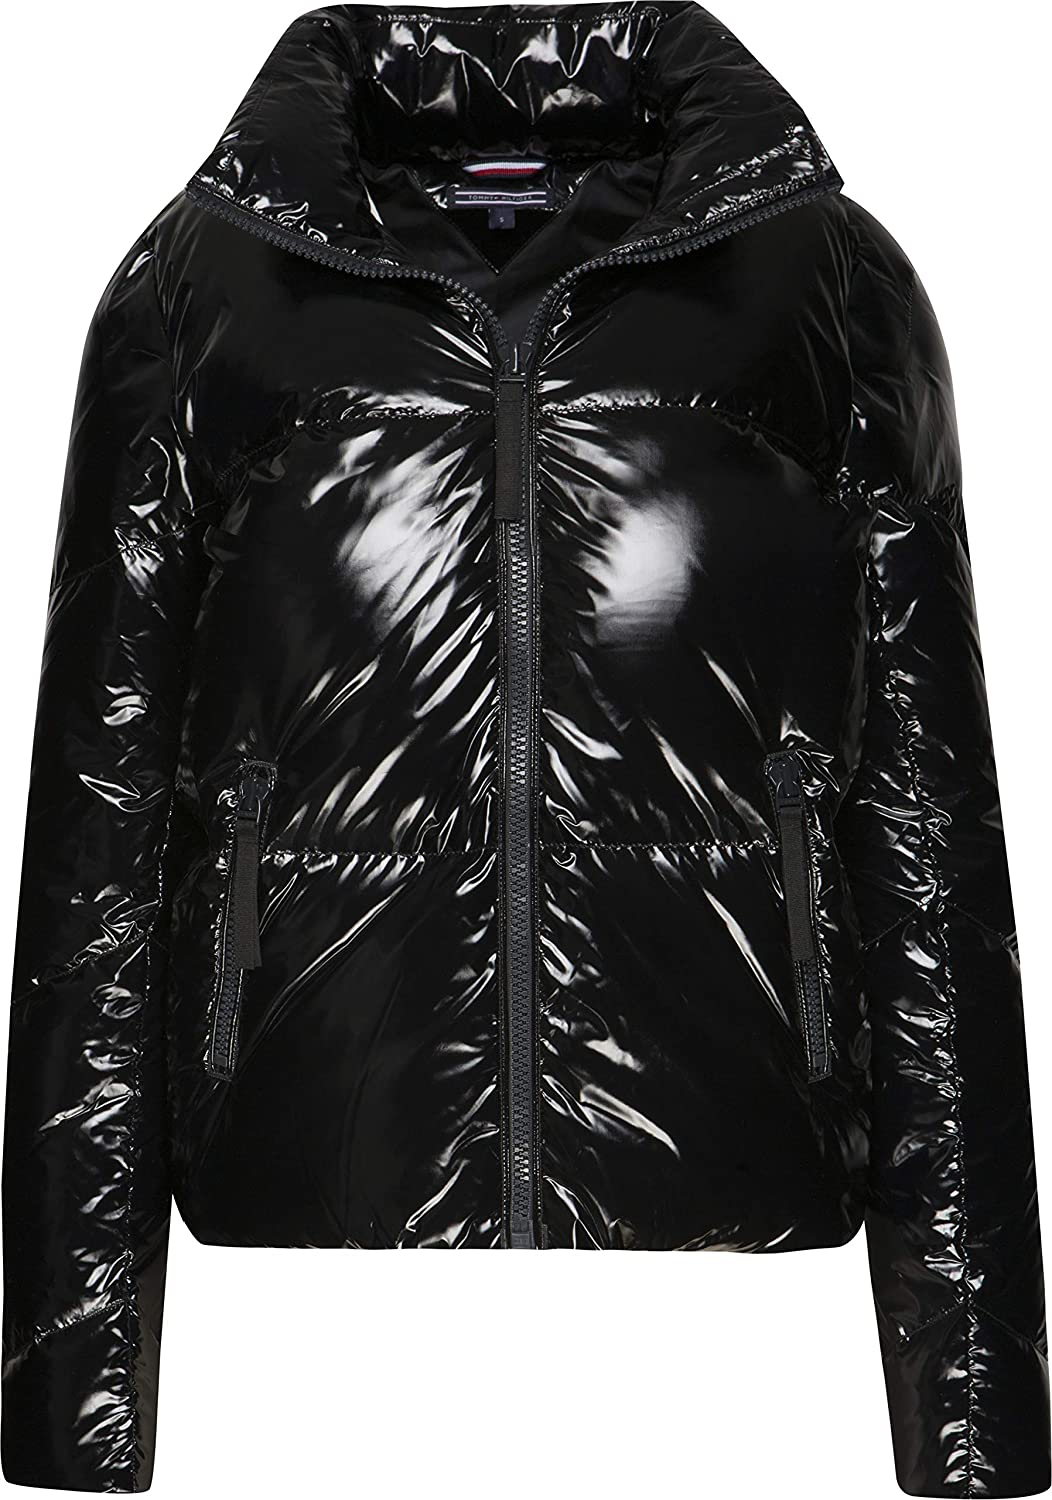 29482fc28 Tommy Hilfiger Ali Candy High Gloss Womens Down Jacket Small Black ...